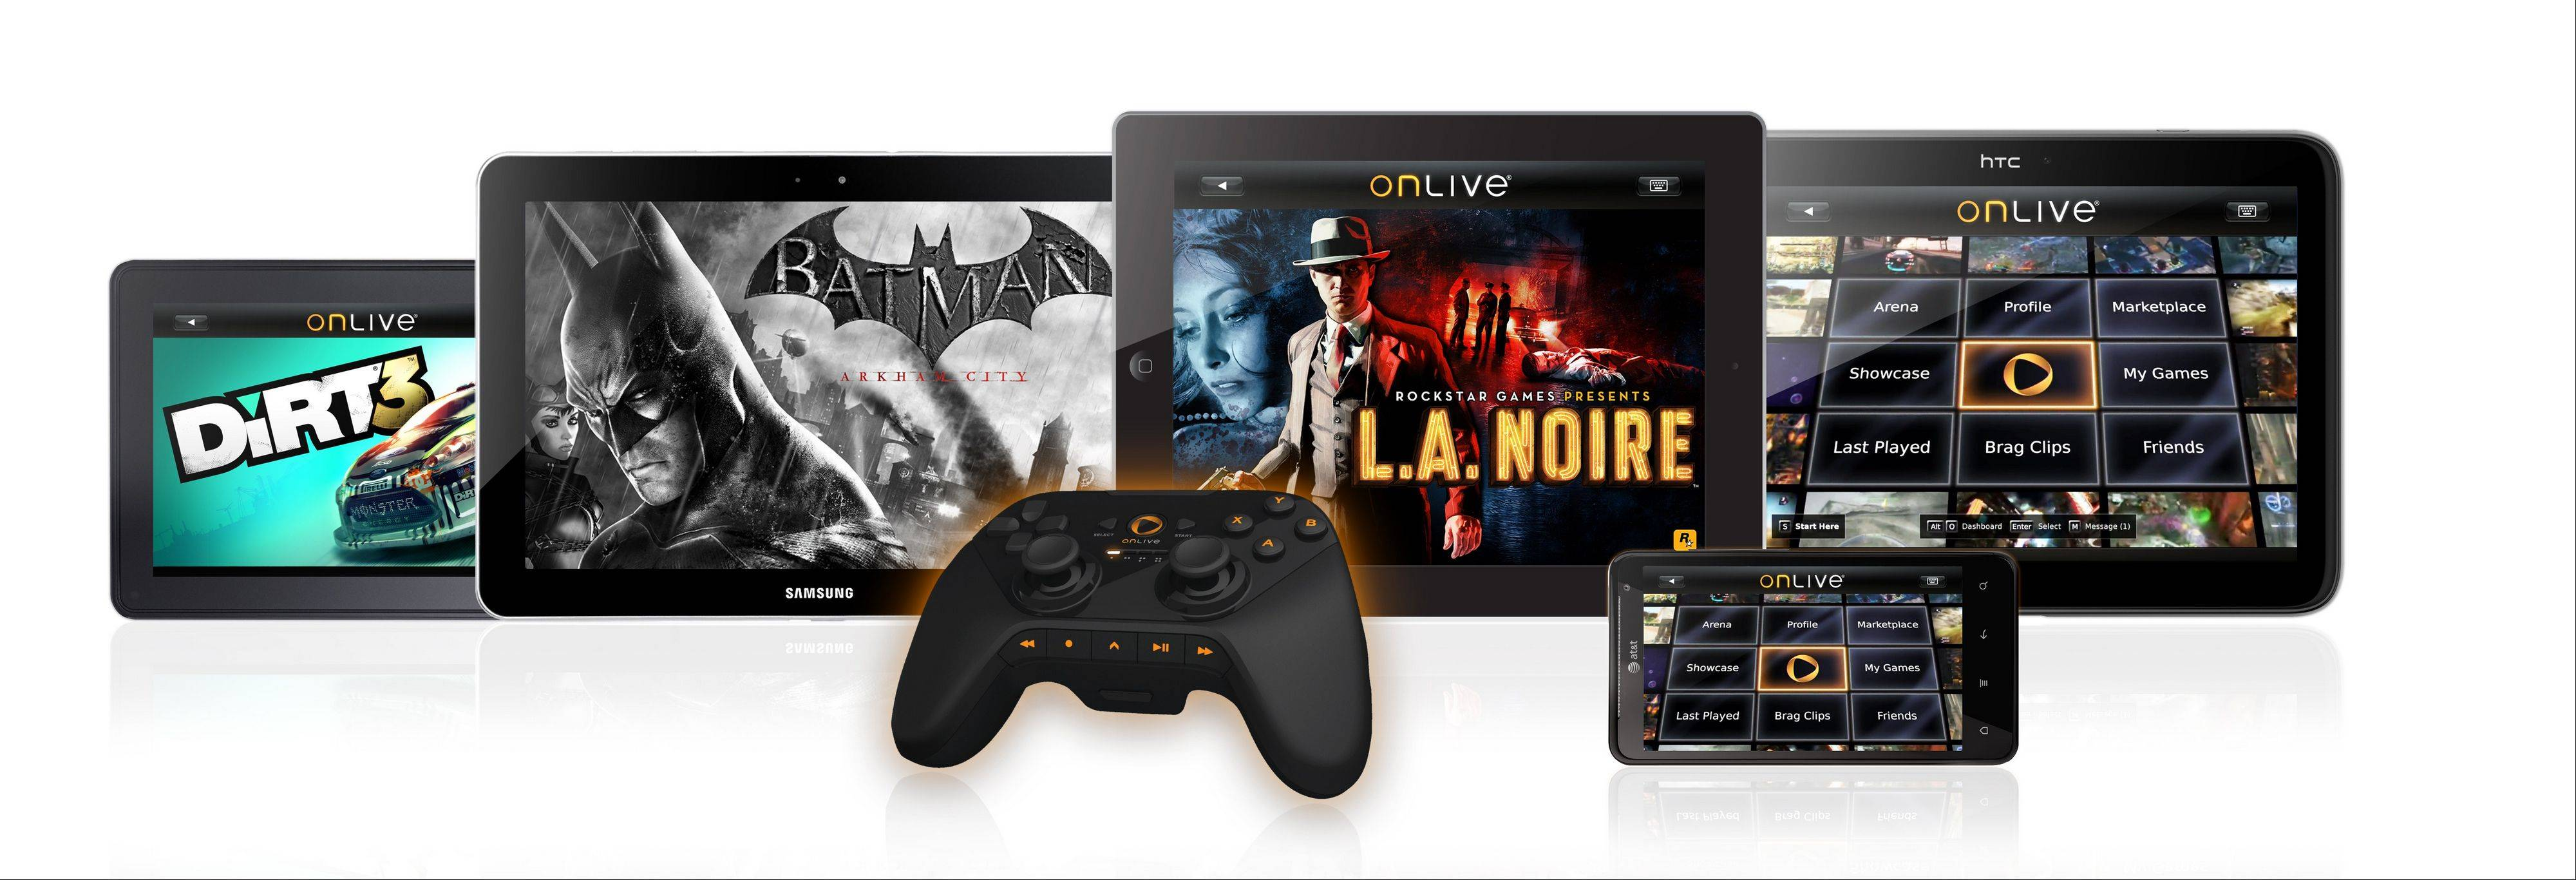 This product image provided by OnLive Inc, shows tablets displaying a variety of games using the OnLive game controller. OnLive, the video game streaming startup that was full of promise when it was unveiled three years ago, has reorganized its business and cut roughly half of its staff amid financial difficulties. But it says it will continue to operate under the same name and users should not see a change in their service.